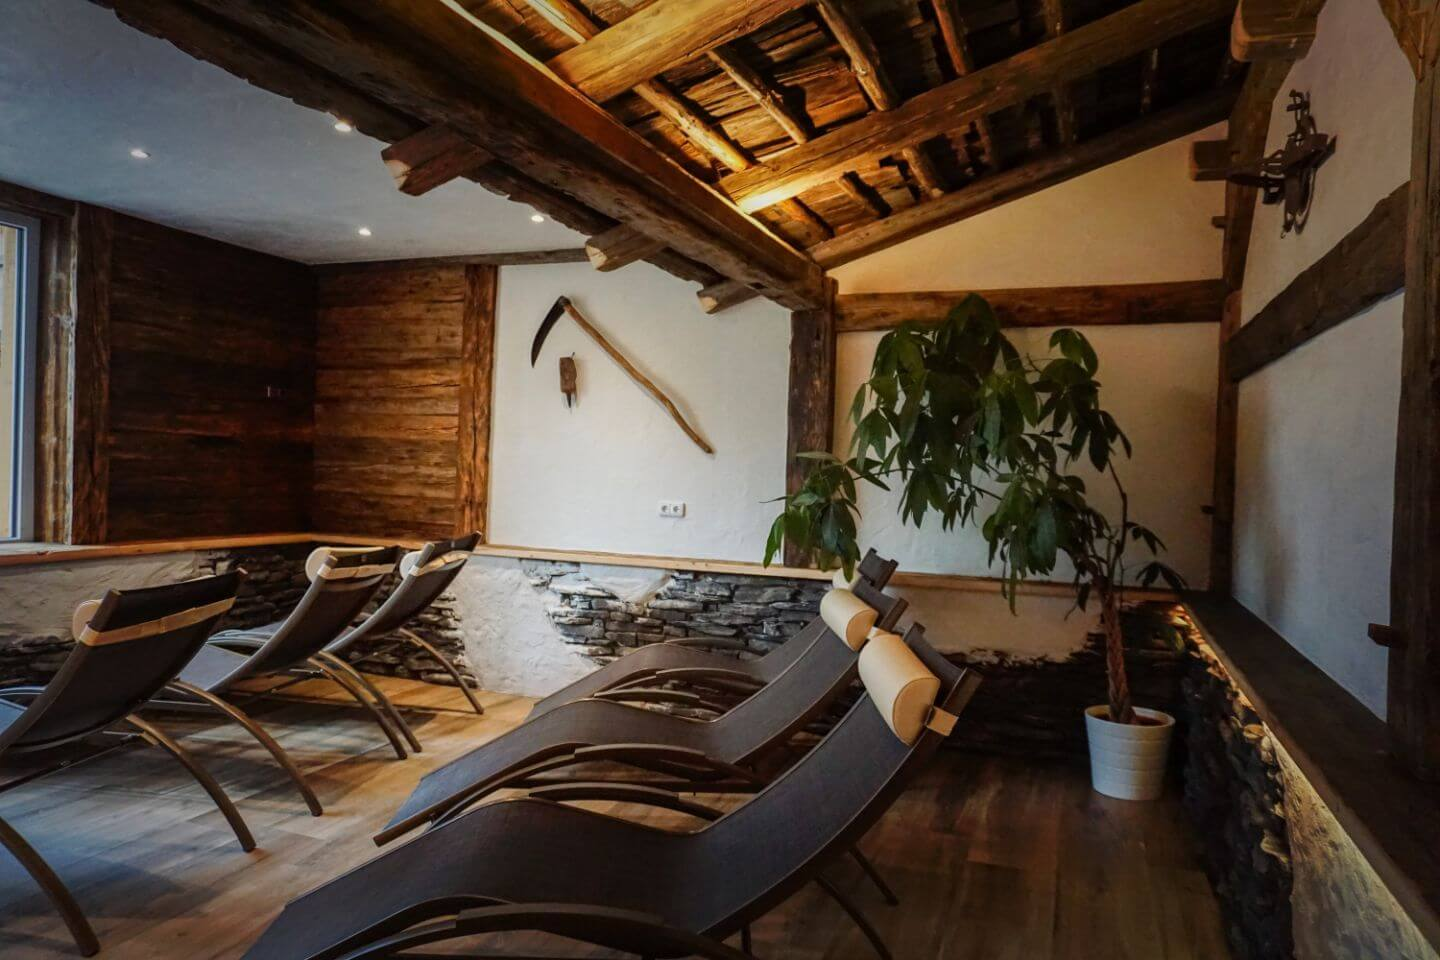 Relaxation Room in Matreier Tauernhaus - Secret Escape in the Austrian Alps